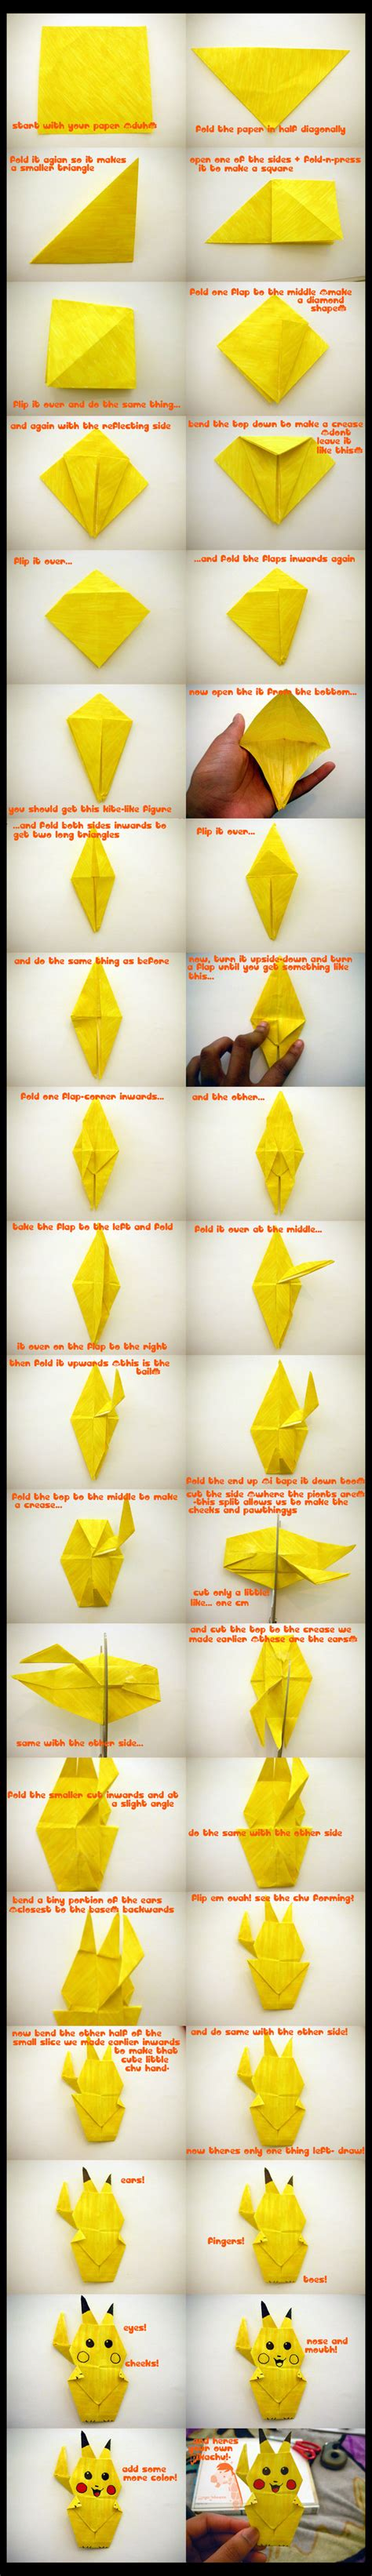 how to make an origami pikachu by wesroz on deviantart